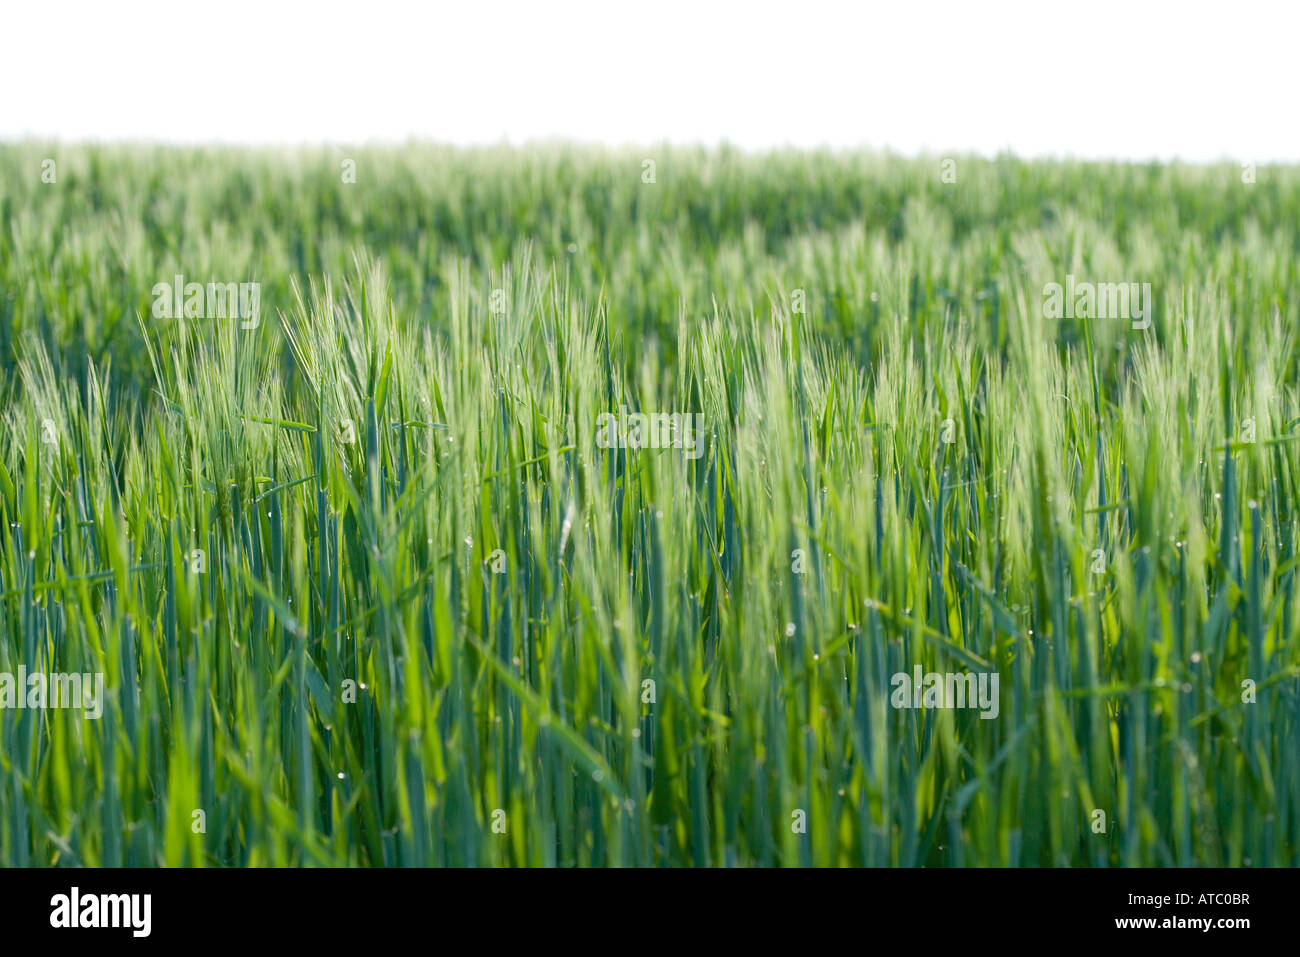 Grass growing in rural field - Stock Image